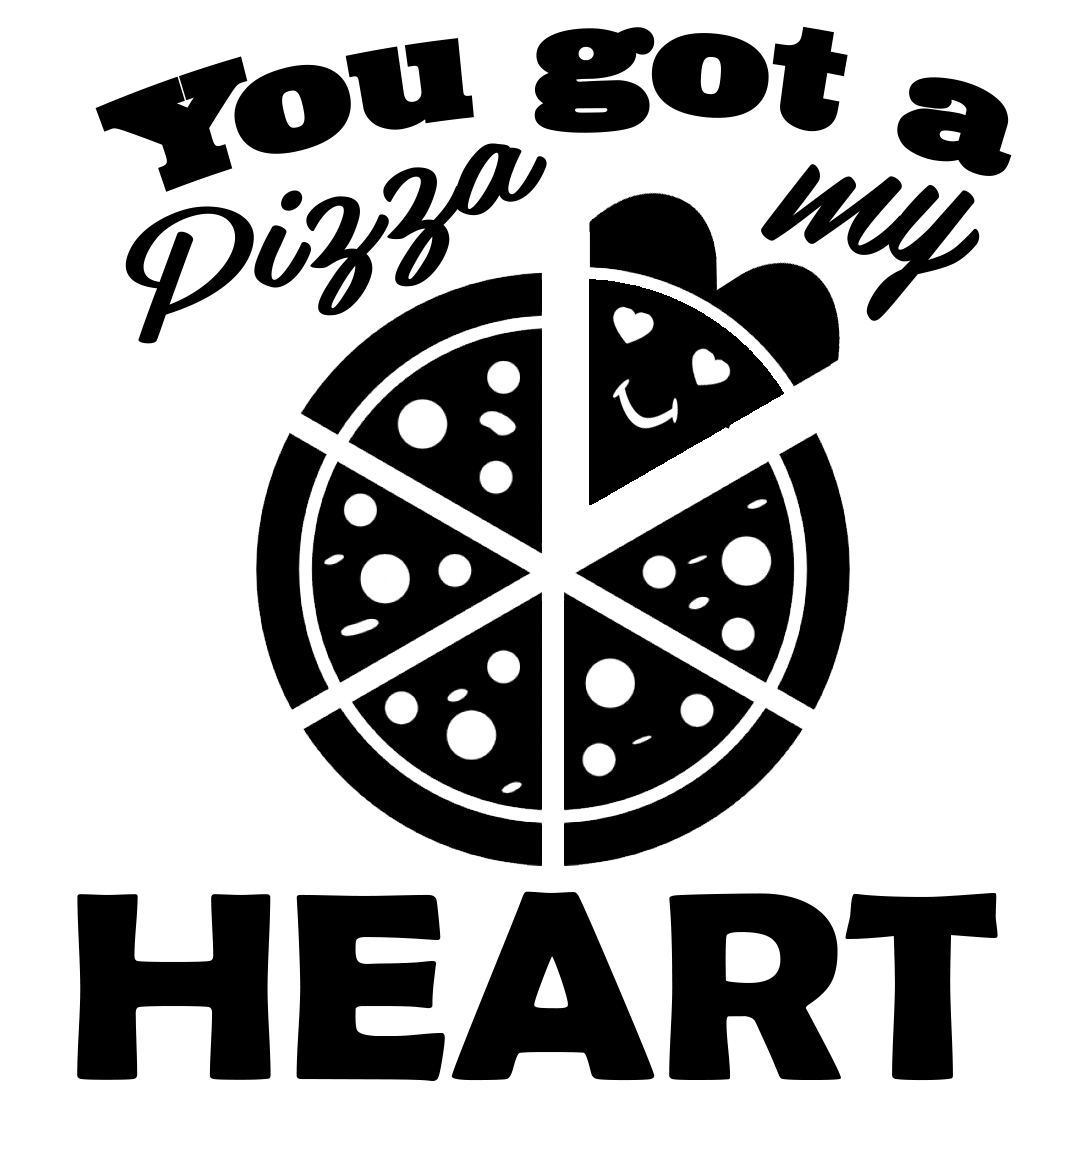 Free Heart Pizza SVG File